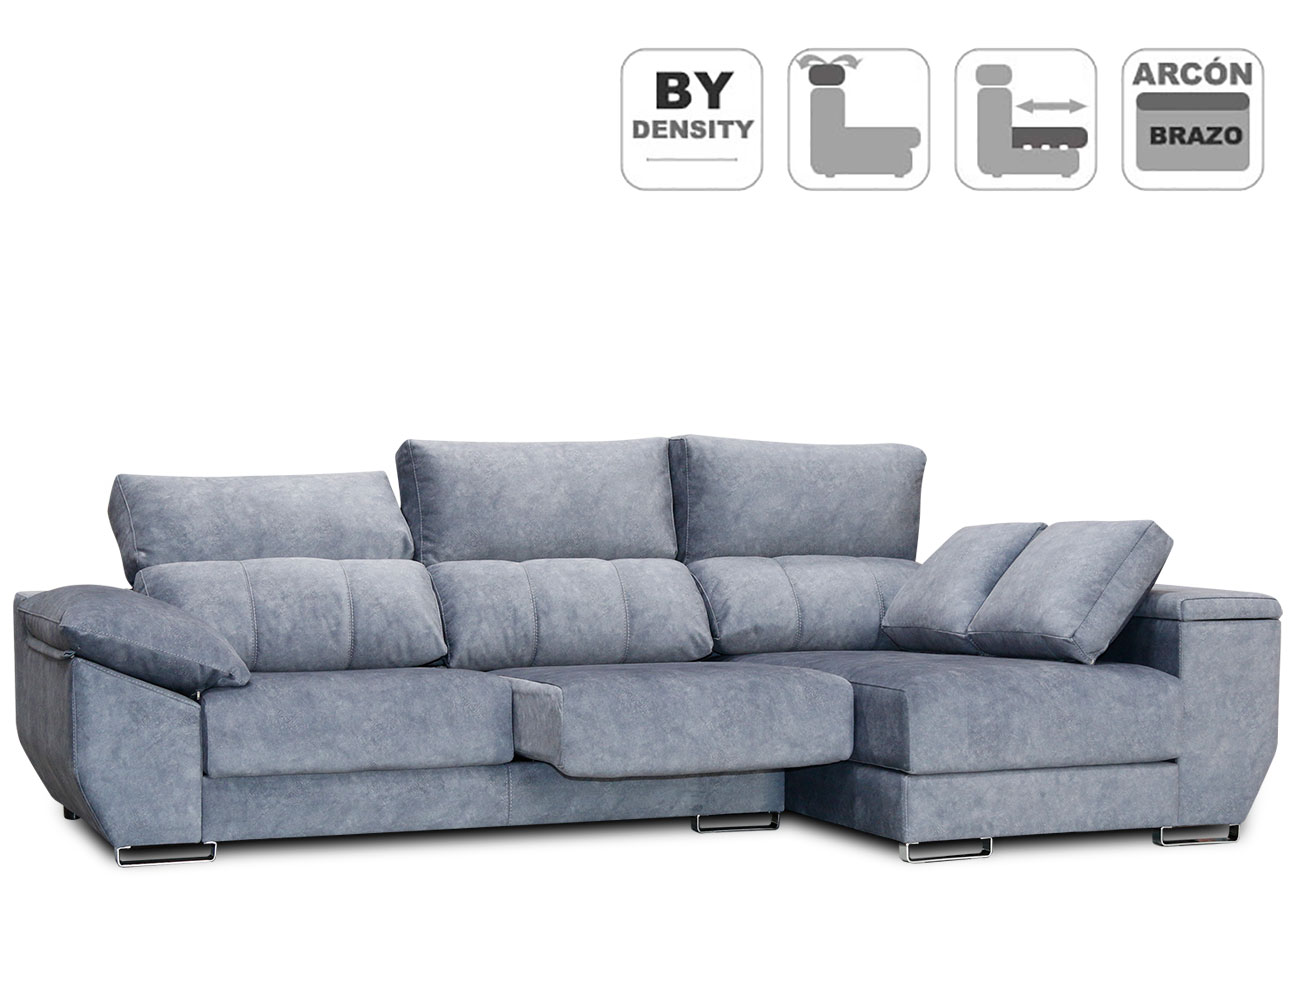 Sofa chaiselongue anti manchas gama alta detalle